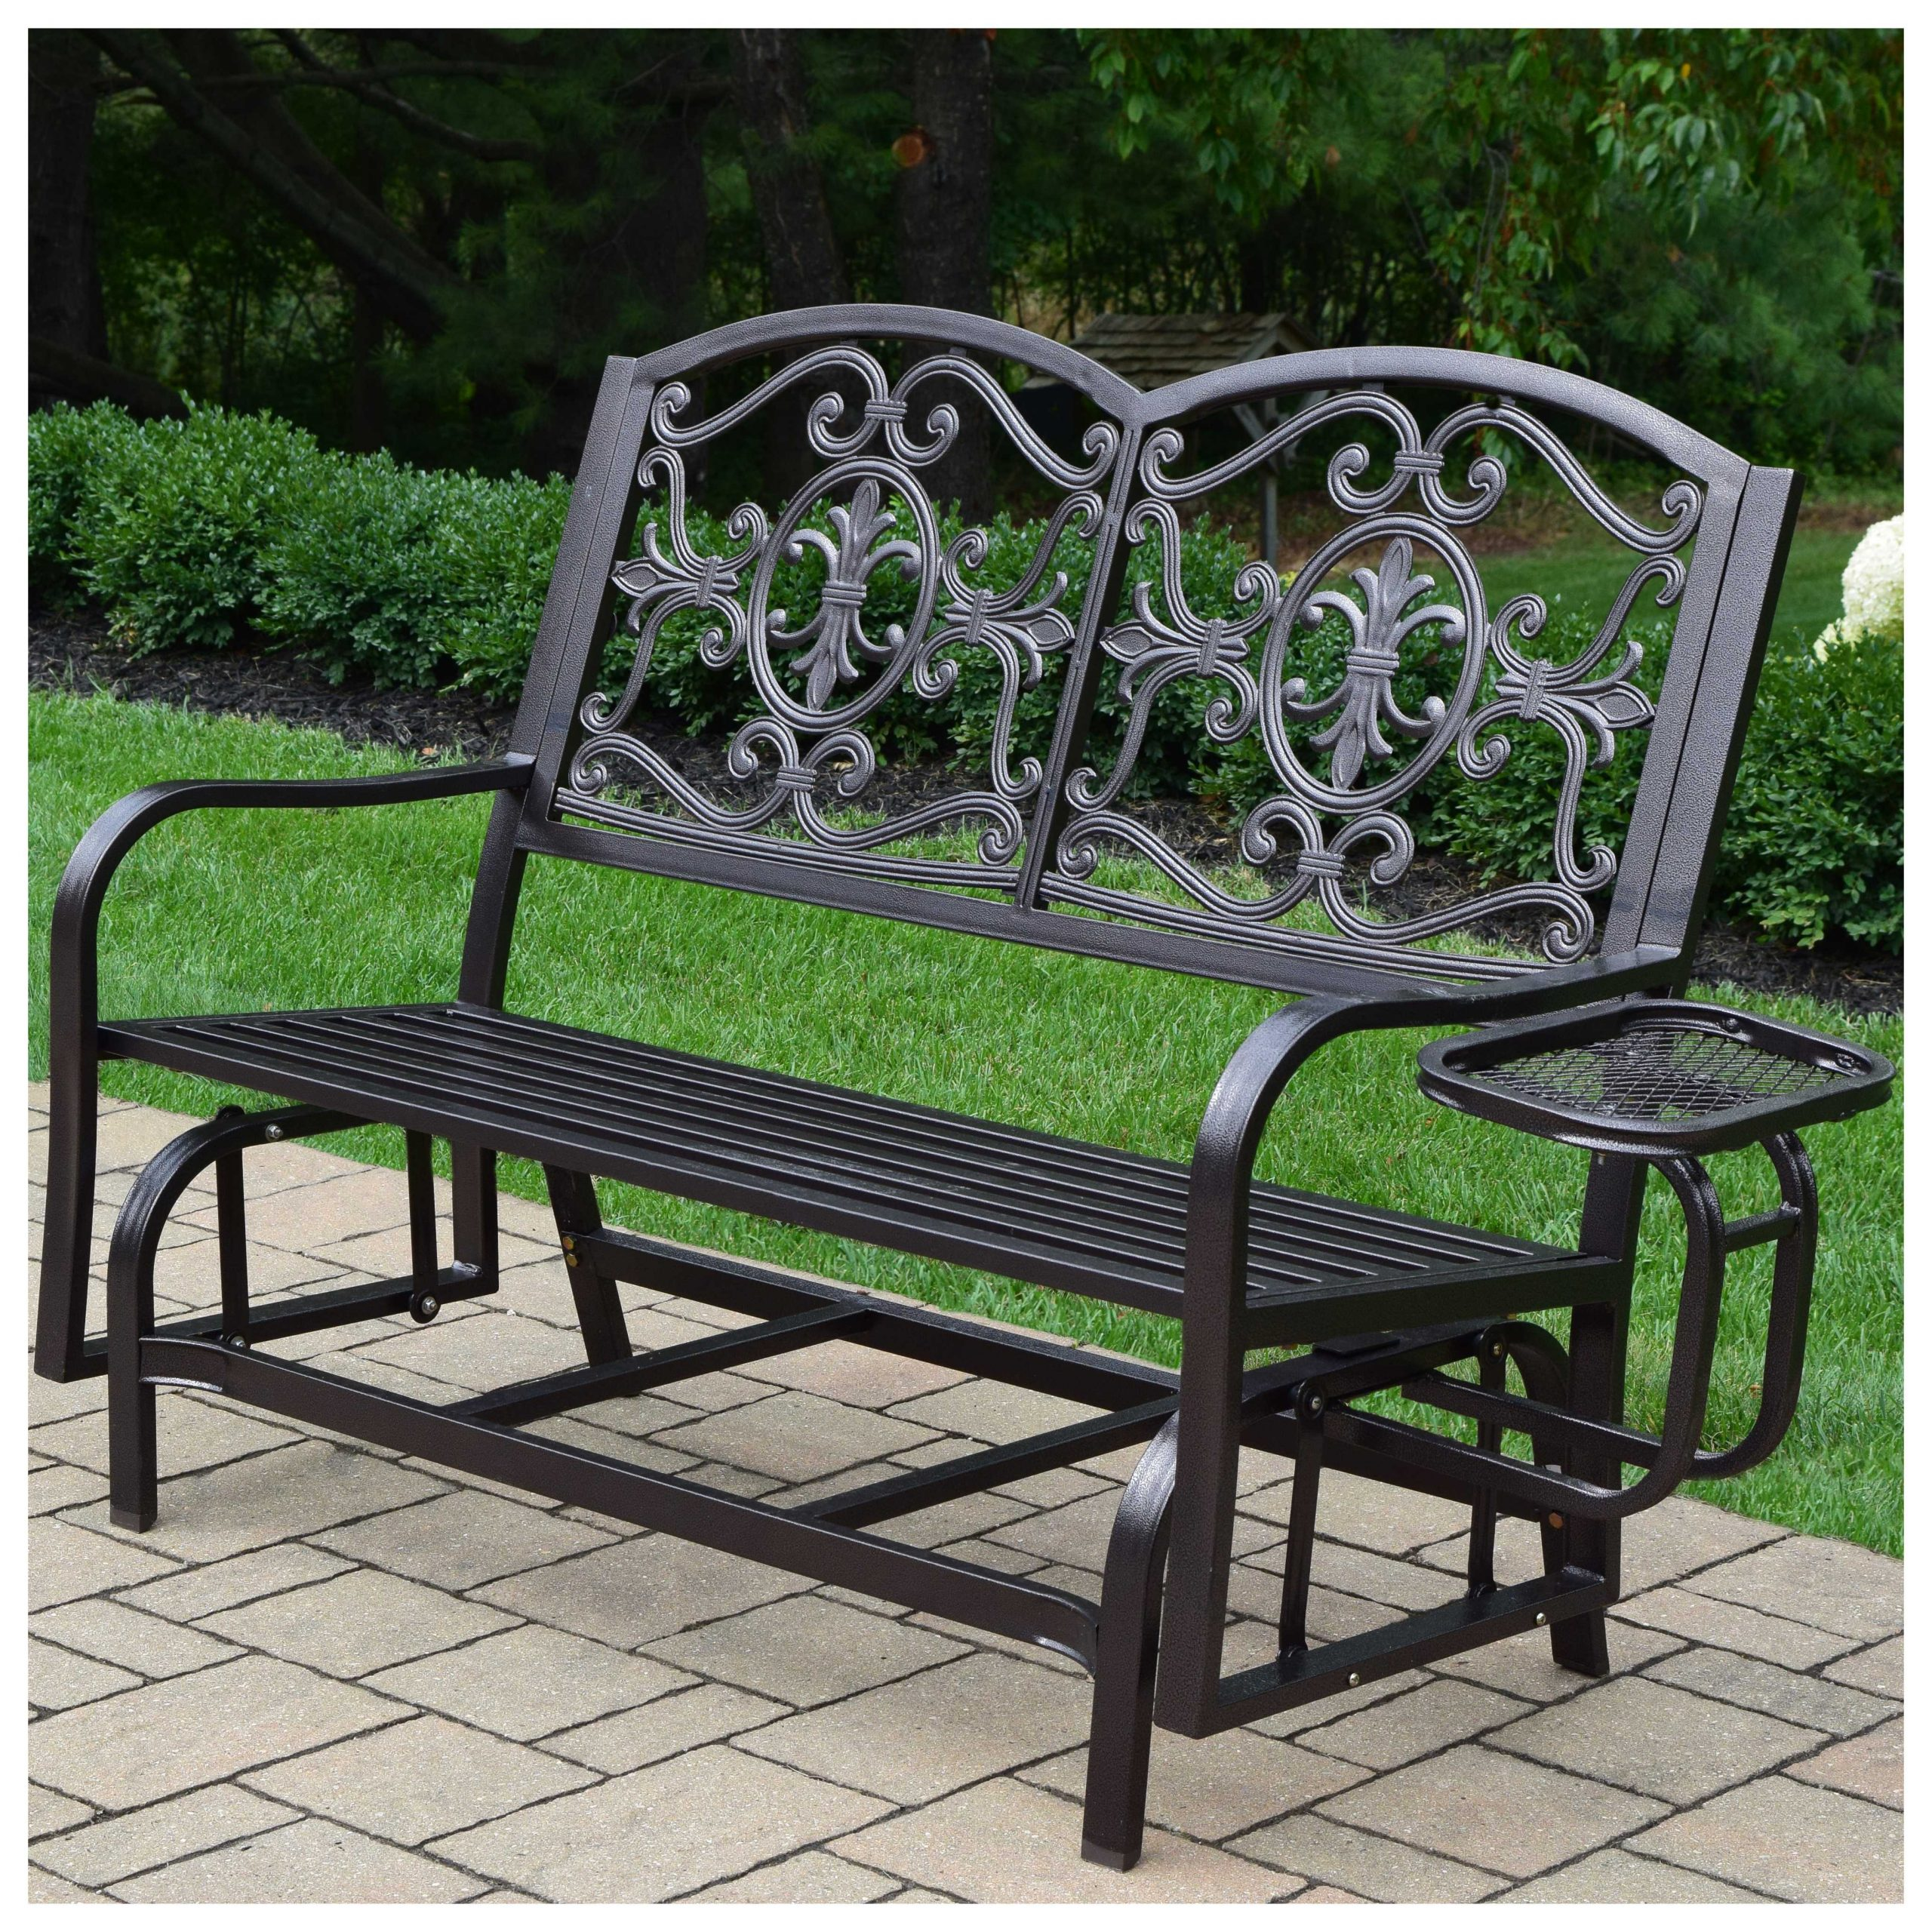 Oakland Living Lakeville Double Glider With Side Tray Patio Regarding Metal Powder Coat Double Seat Glider Benches (View 6 of 25)